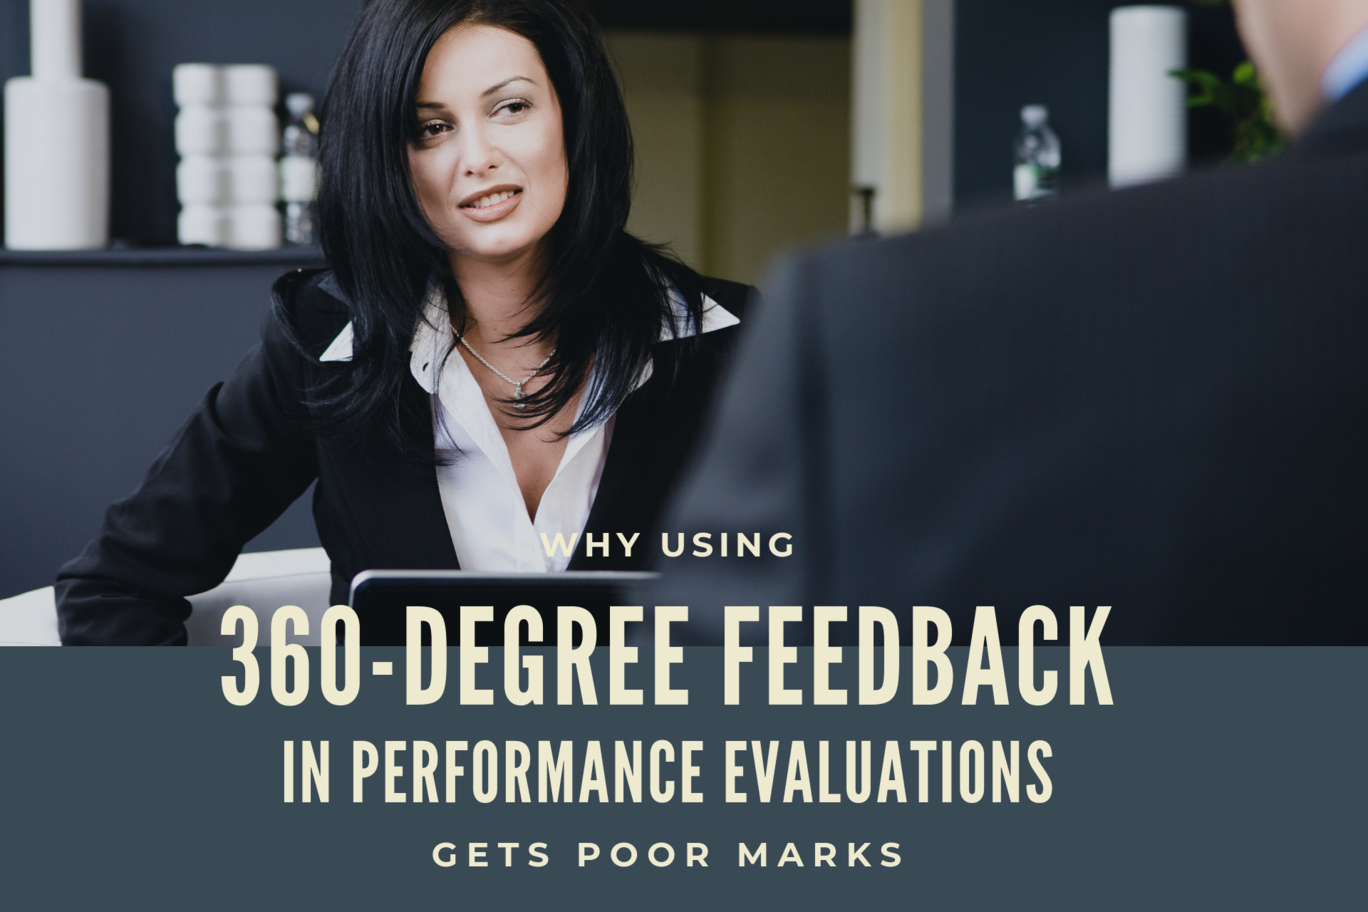 Why Using 360-Degree Feedback in Performance Evaluations Gets Poor Marks